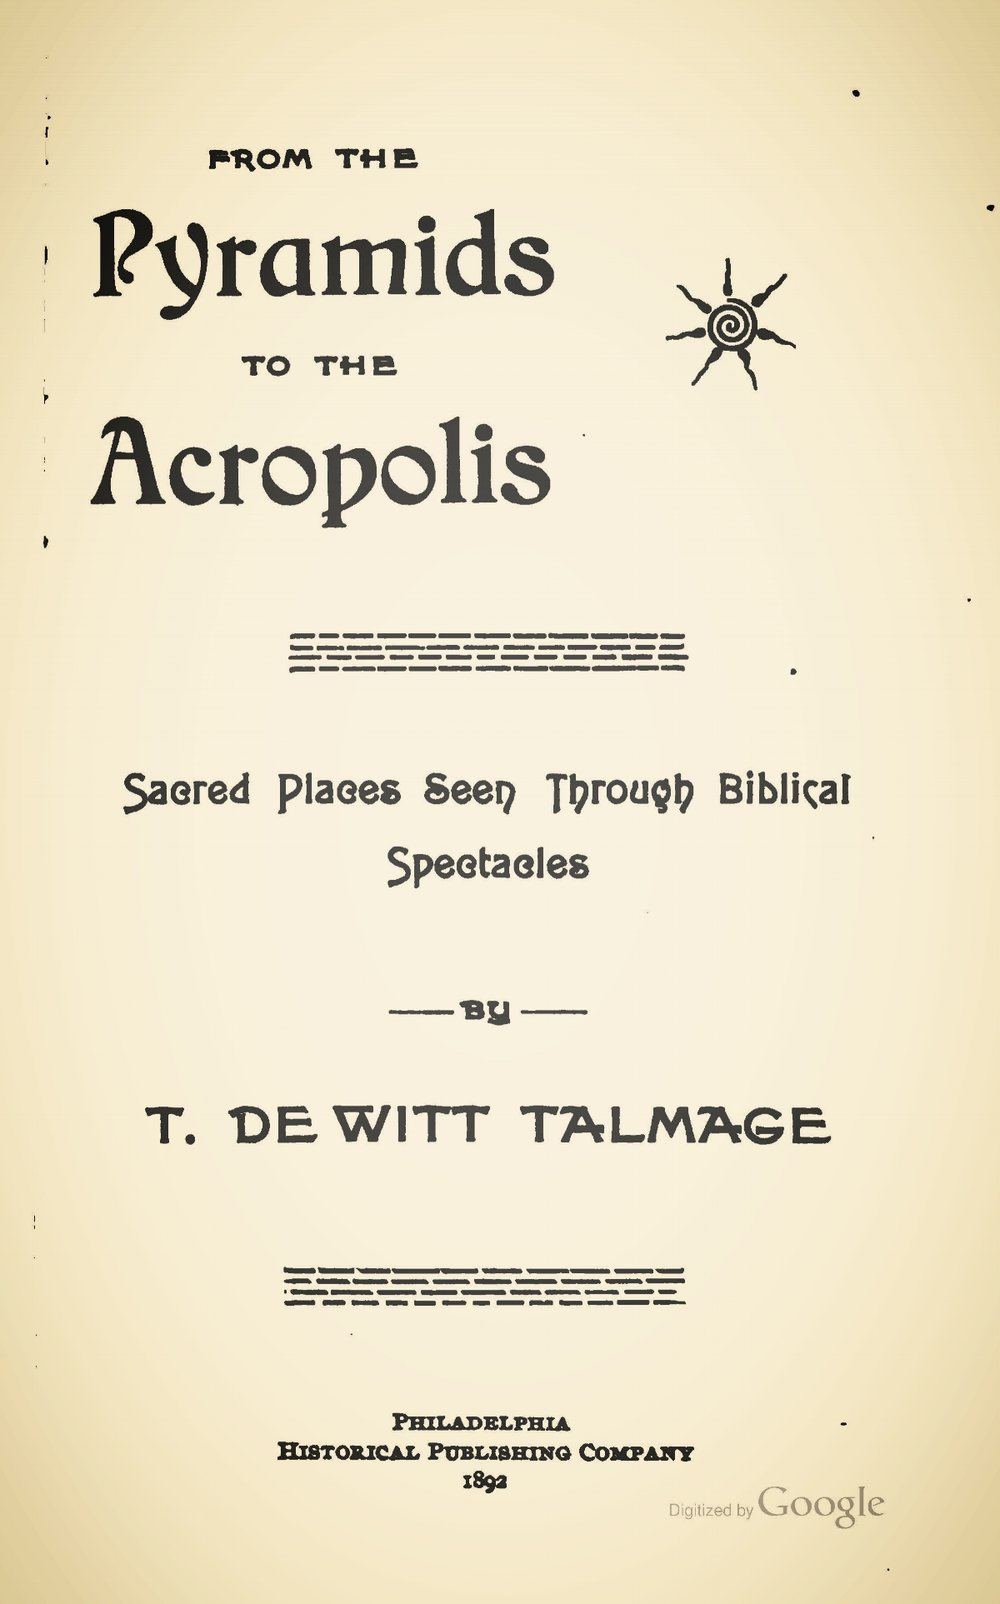 Talmage, Thomas De Witt, From the Pyramids to the Acropolis Title Page.jpg